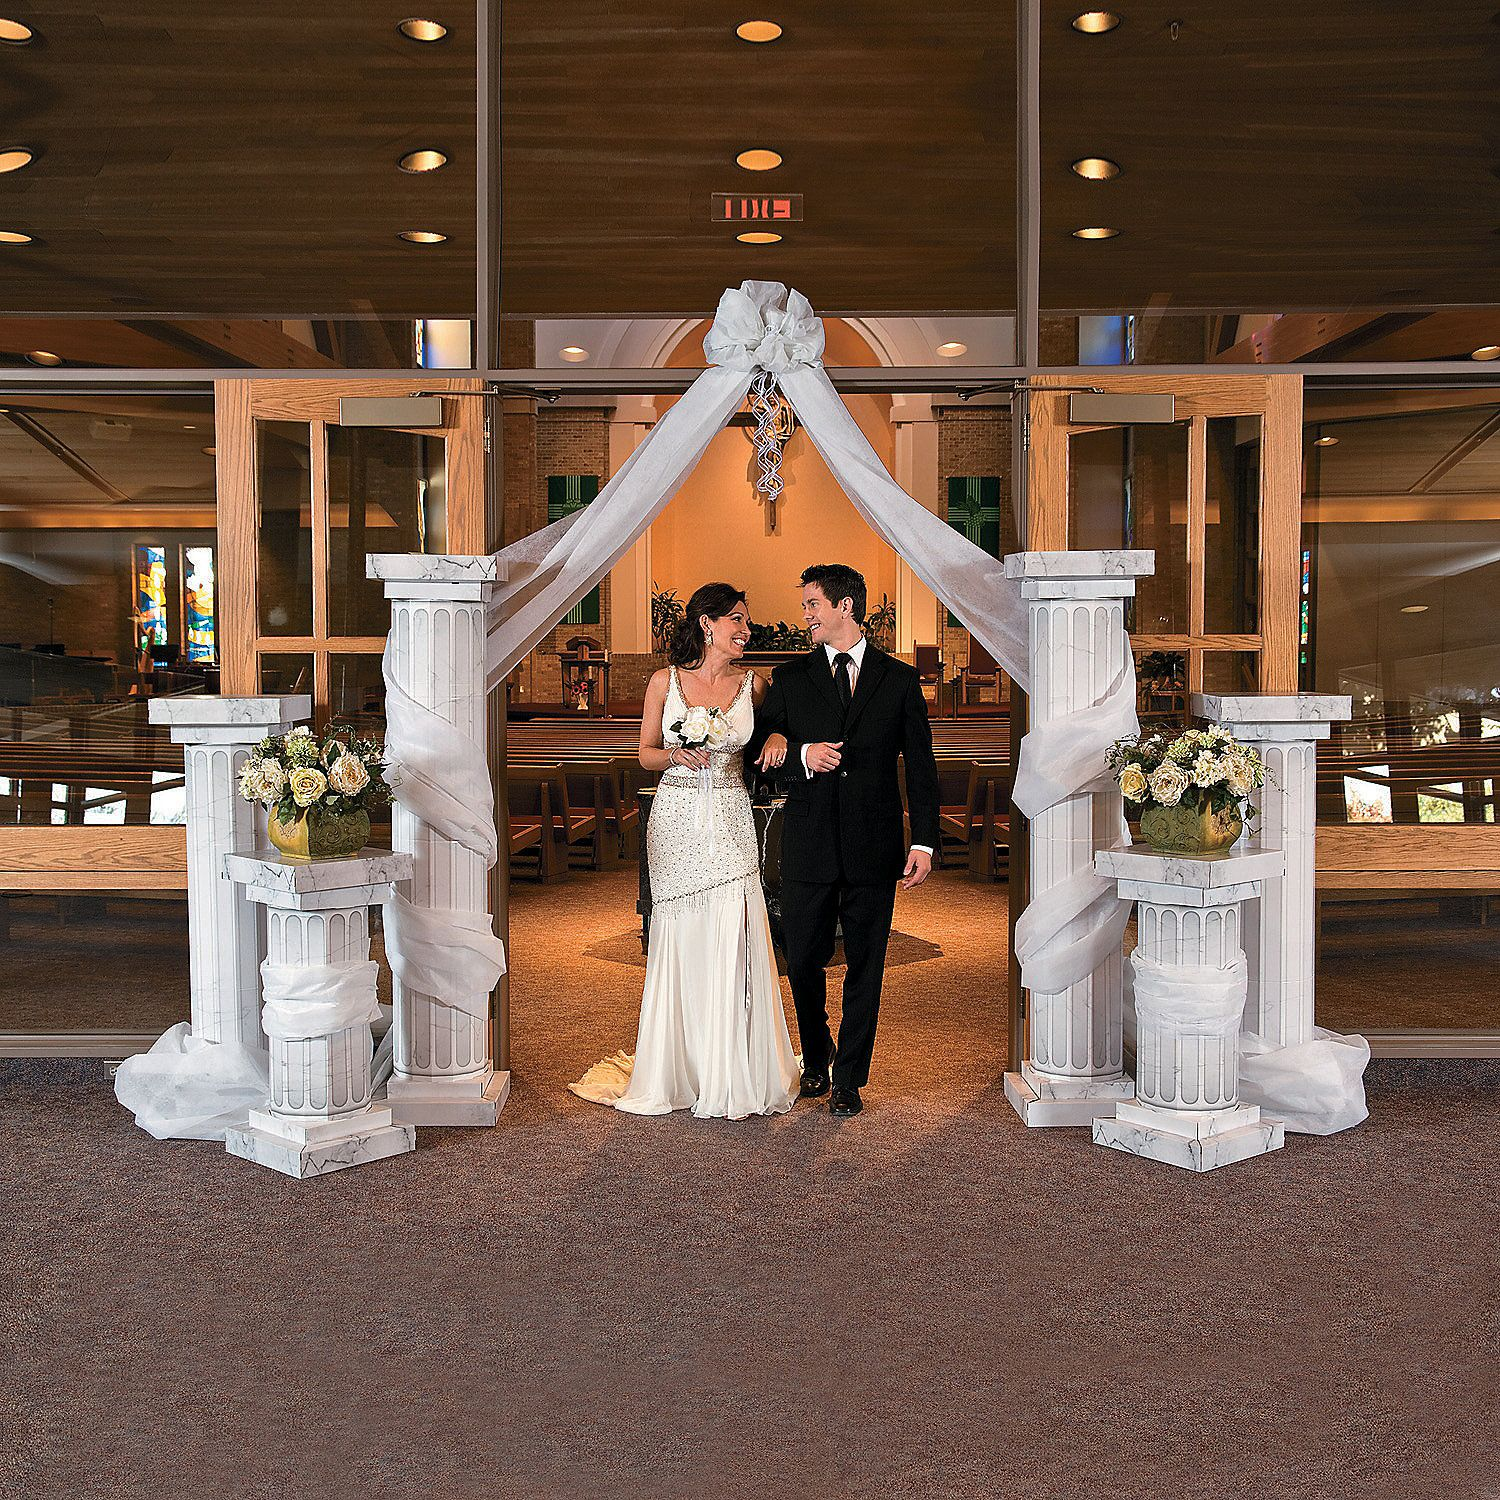 Wedding columns gossamer draping get the look of your dreams wedding columns gossamer draping get the look of your dreams without blowing your wedding budget add these columns to your wedding ceremony or reception junglespirit